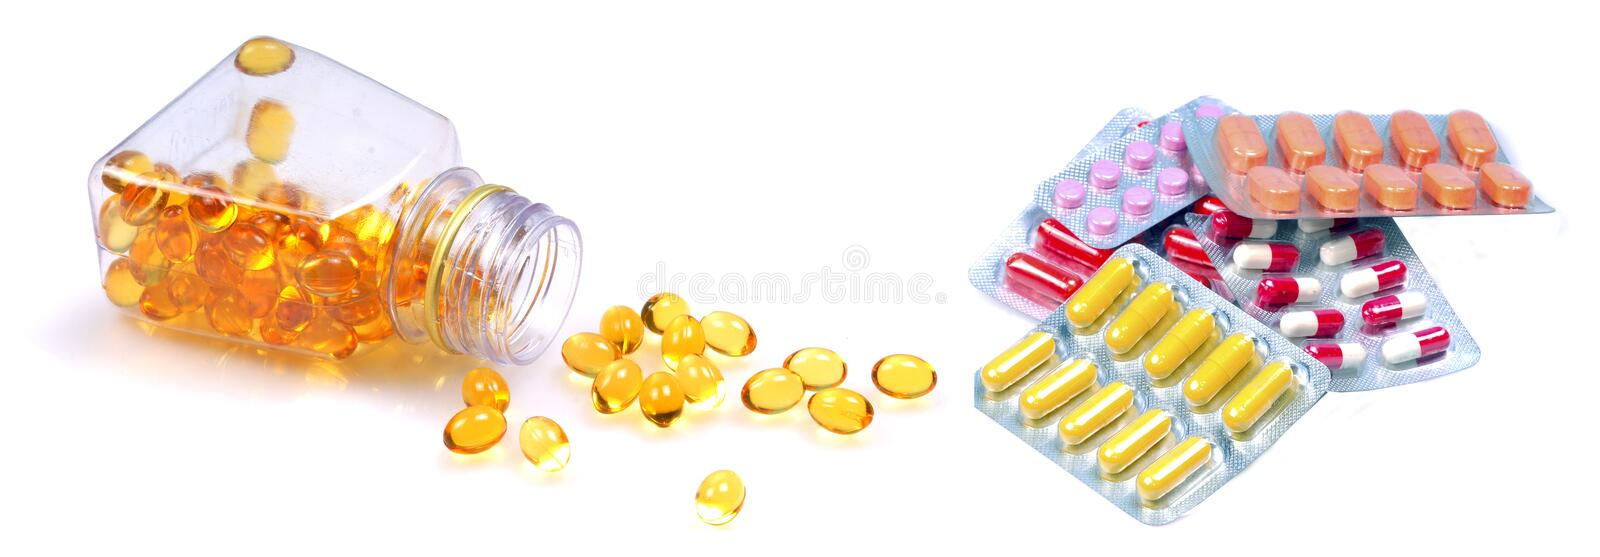 Download Capsules and pills stock photo. Image of capsules, pills - 19613598